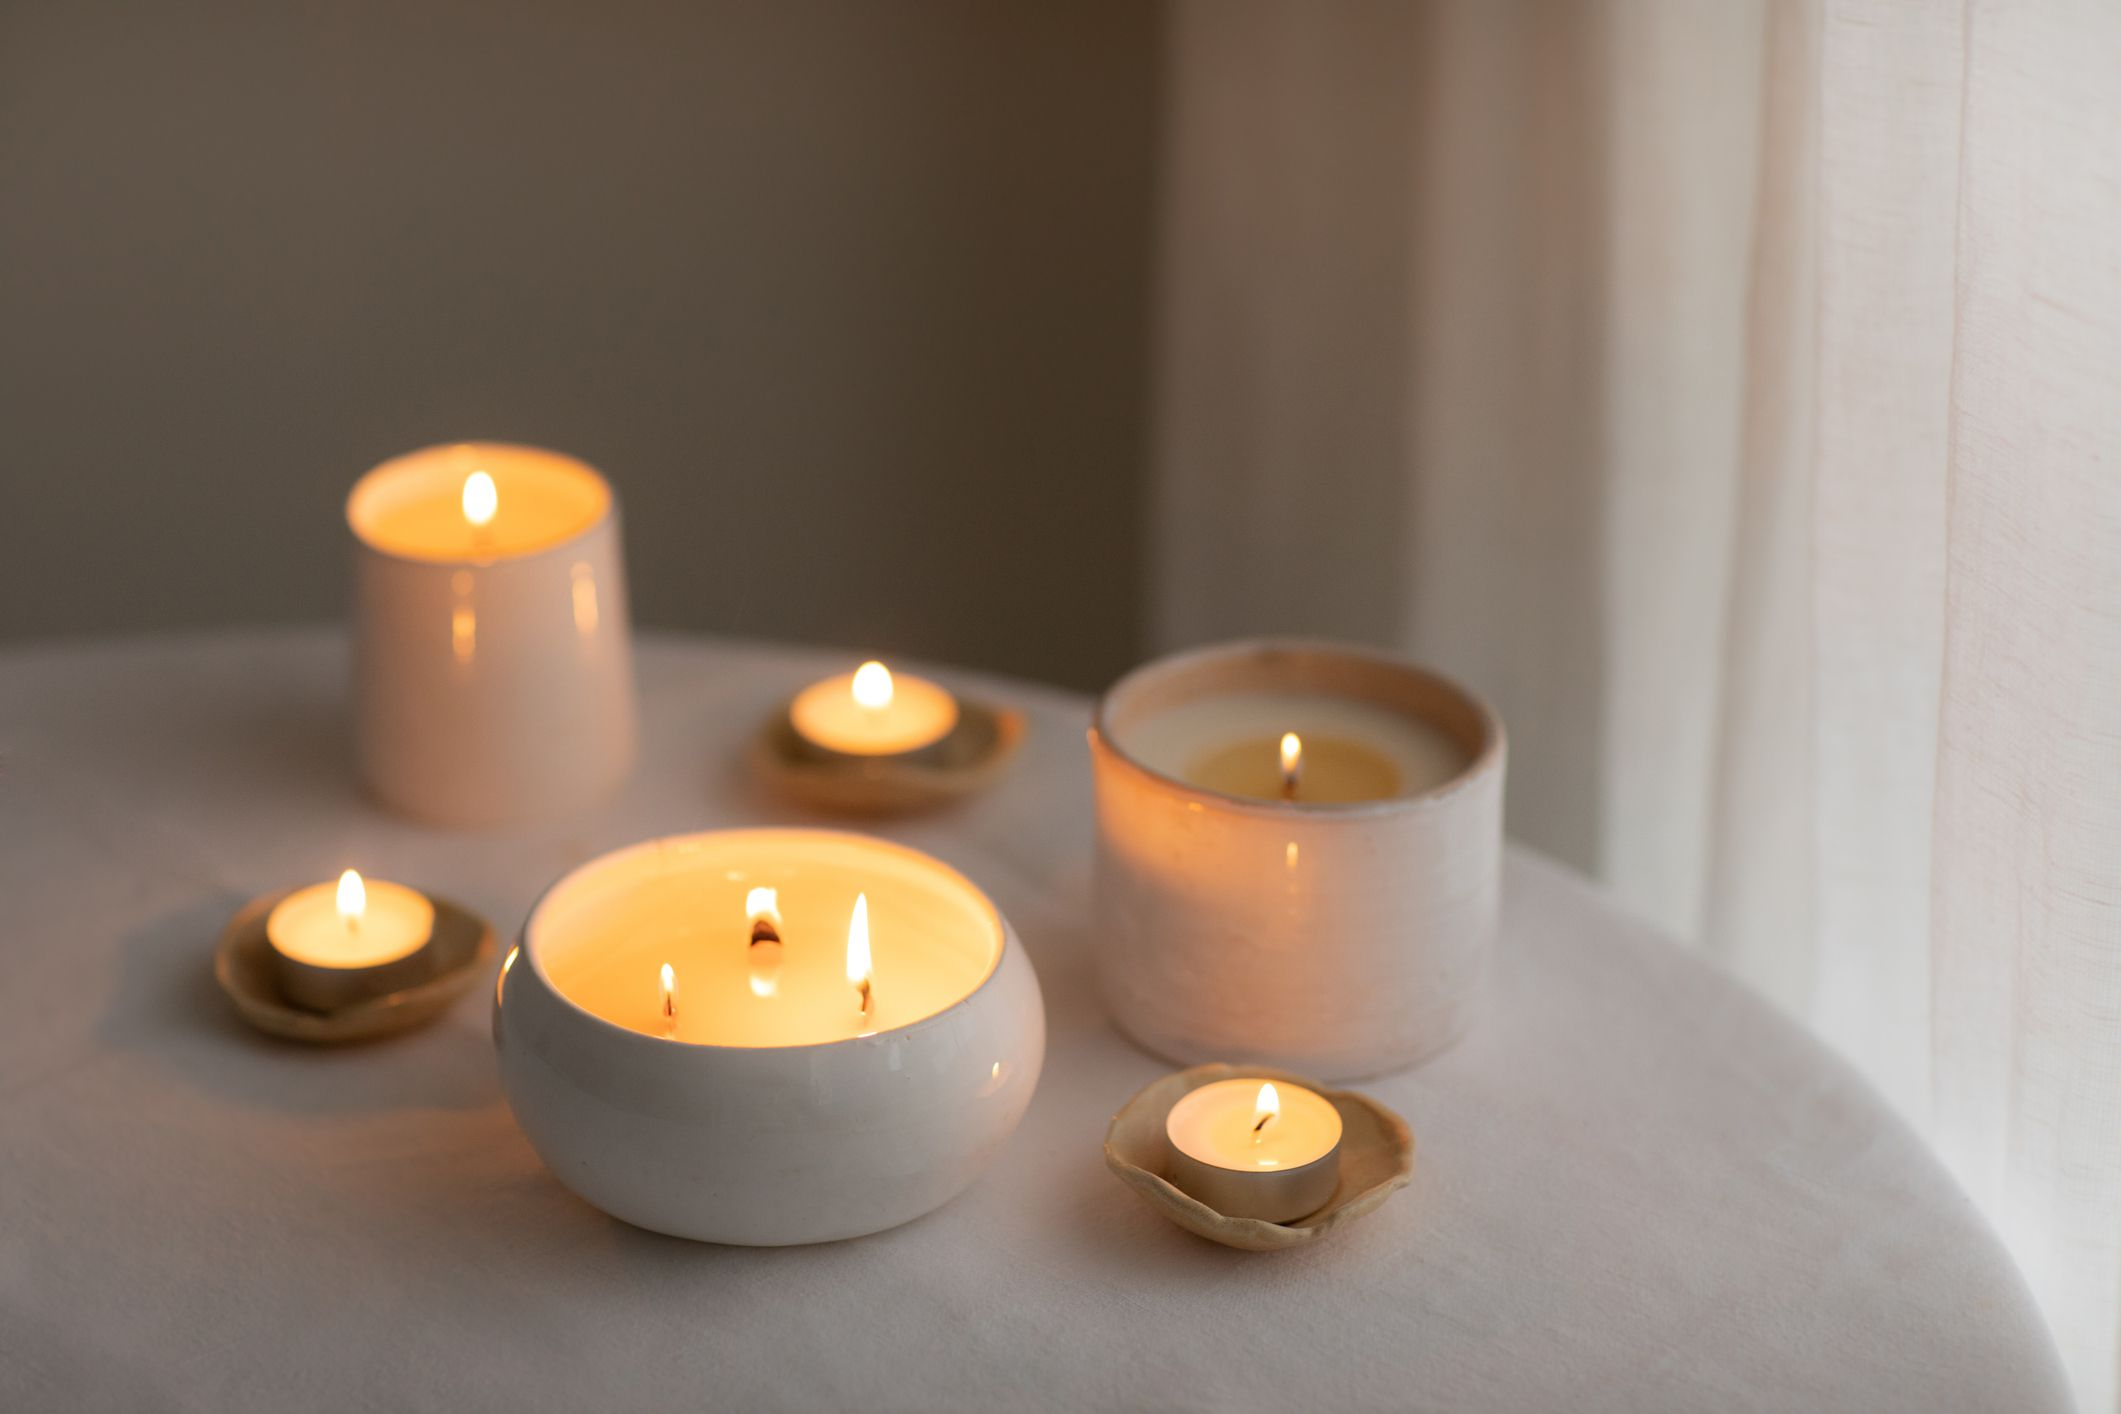 A group of candles on a table